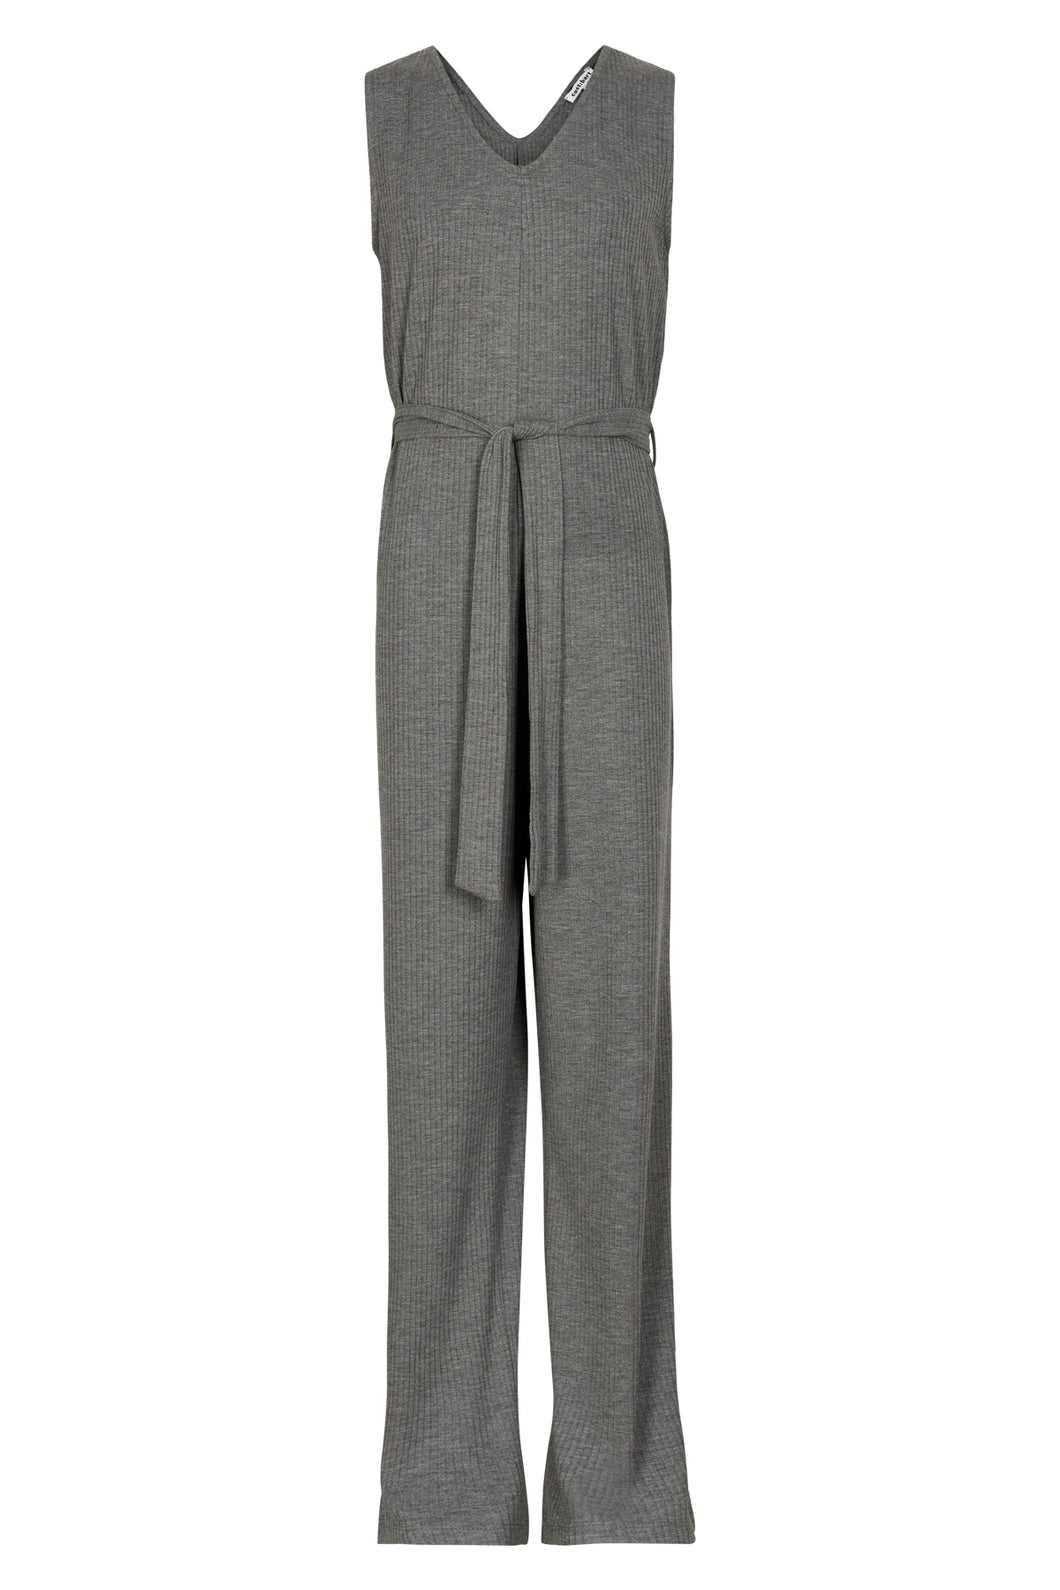 Cost Bart - Jumpsuit Marseille - Teens Girls